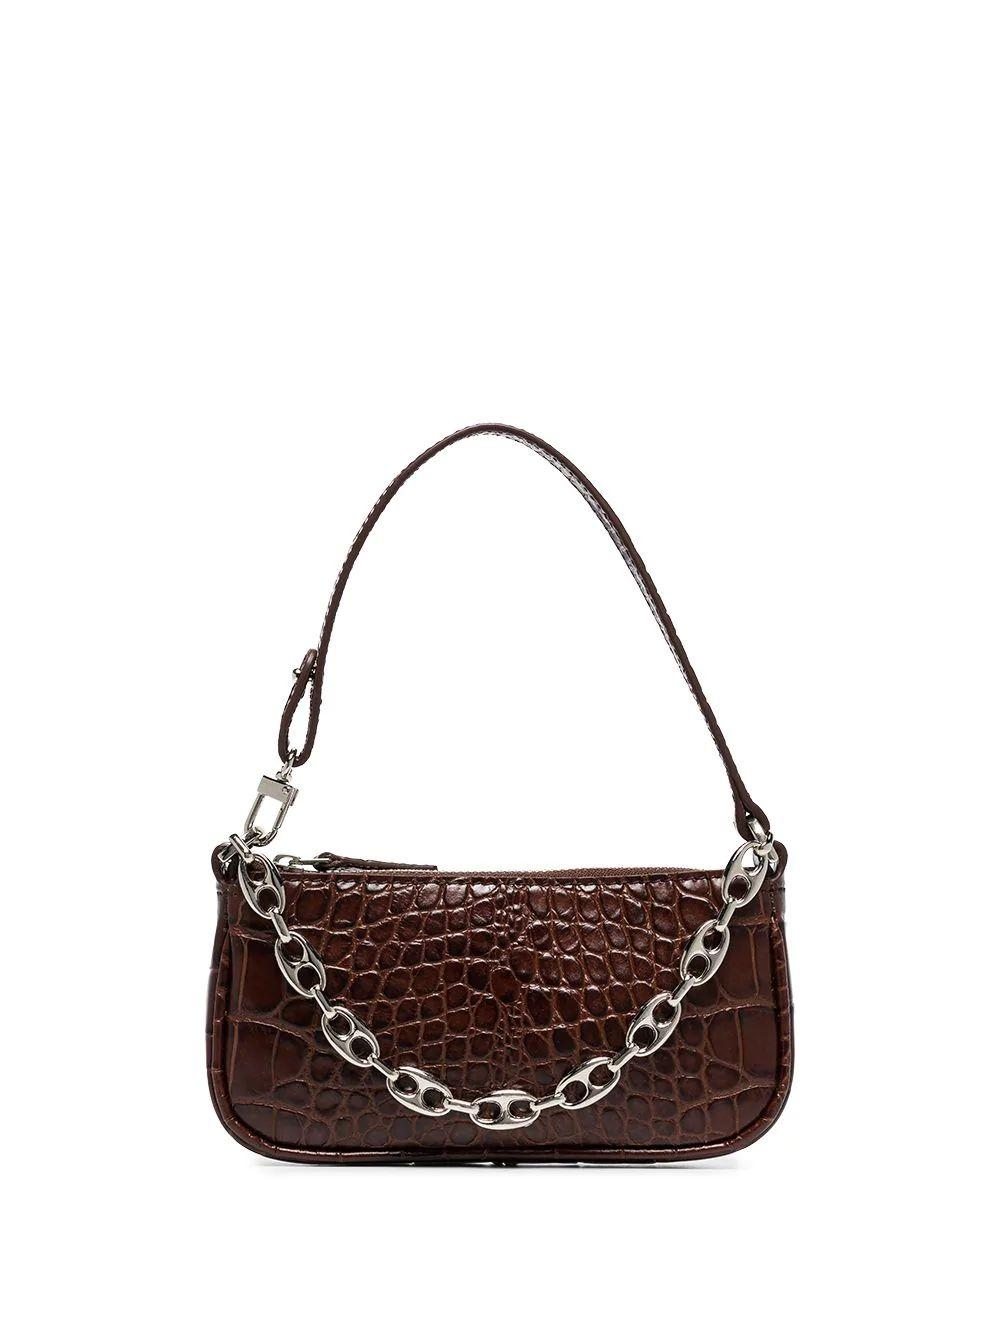 Mini Rachel Croc Shoulder Bag Item # 20CRMIRANEDSMA